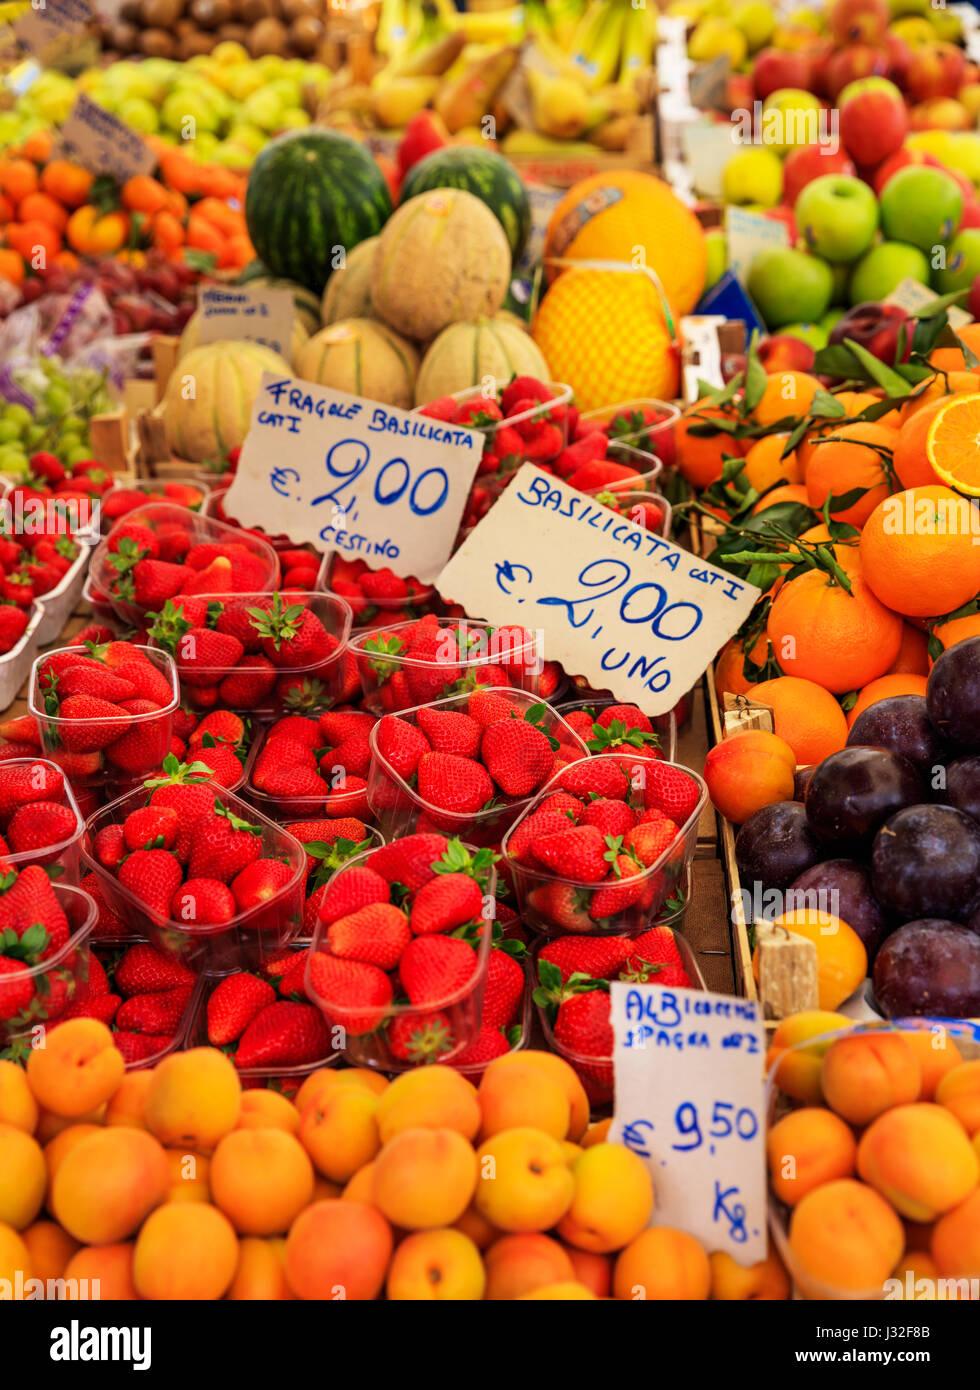 Variety of fruits for sale in an open-air market in Italy